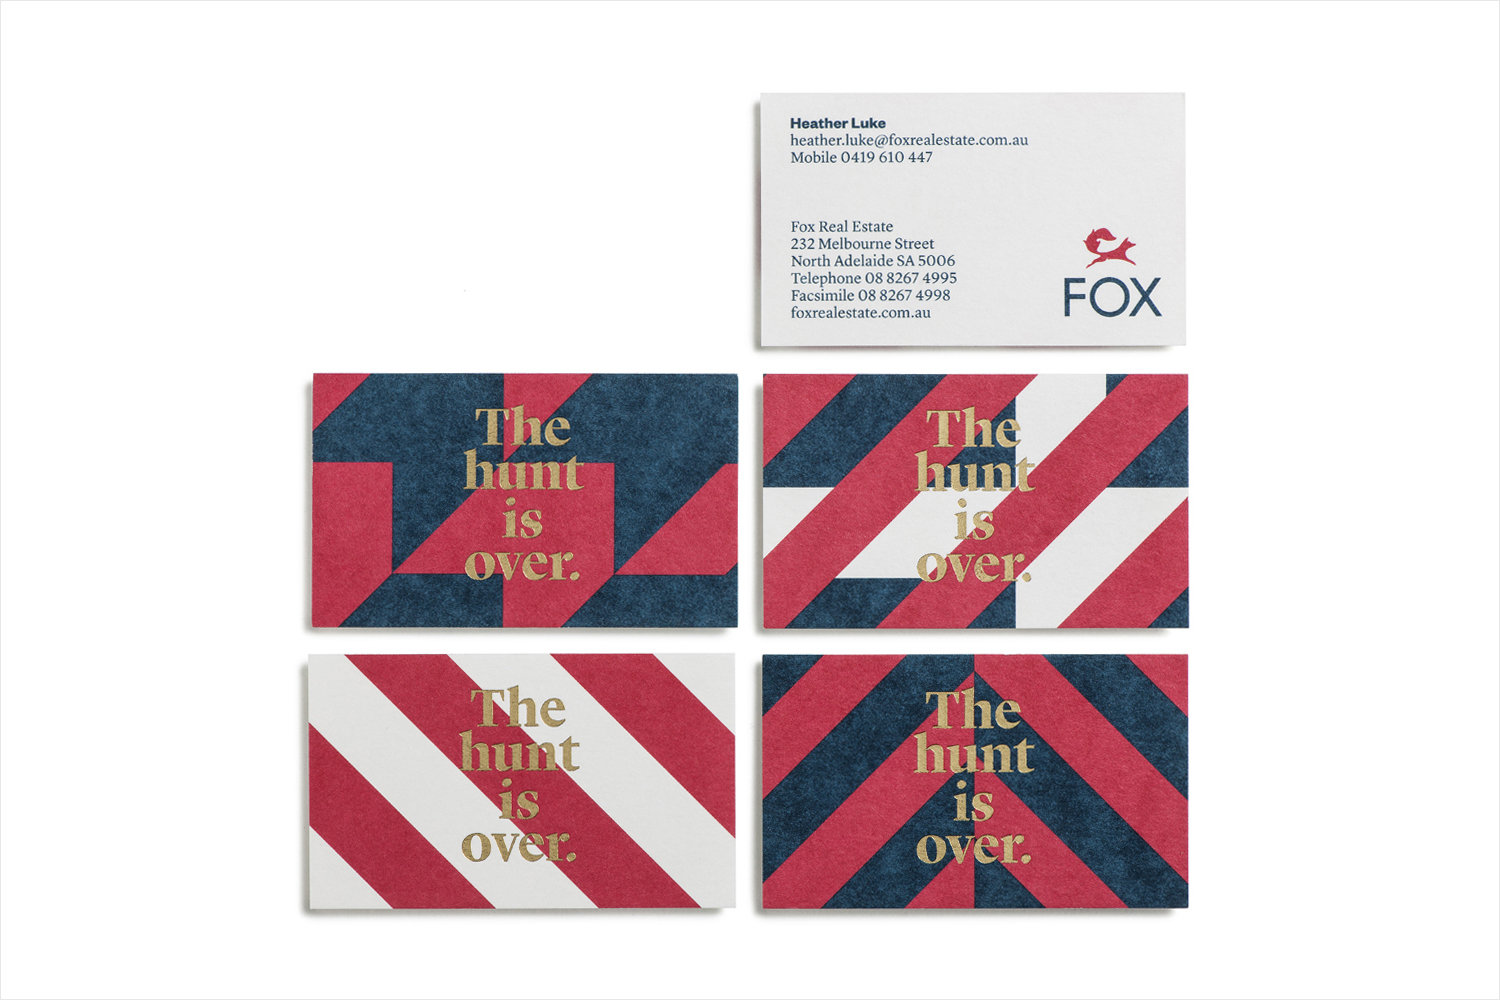 Brand identity and business cards for Fox Real Estate by Parallax Design, Australia